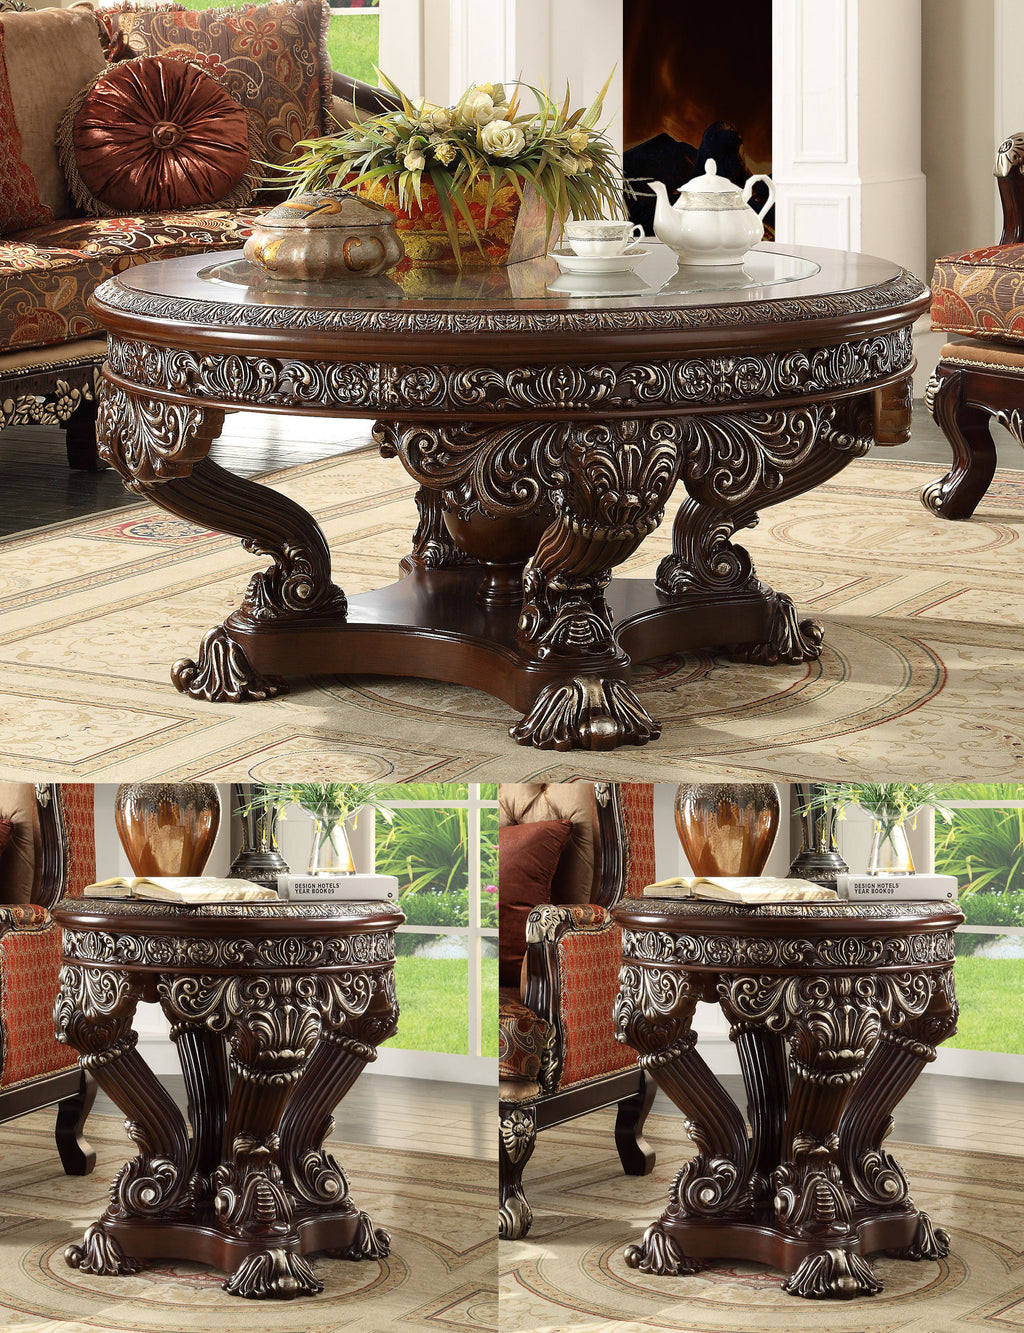 3 PC Coffee Table Set in Metallic Silver Finish 8017-CTSET3 European Victorian